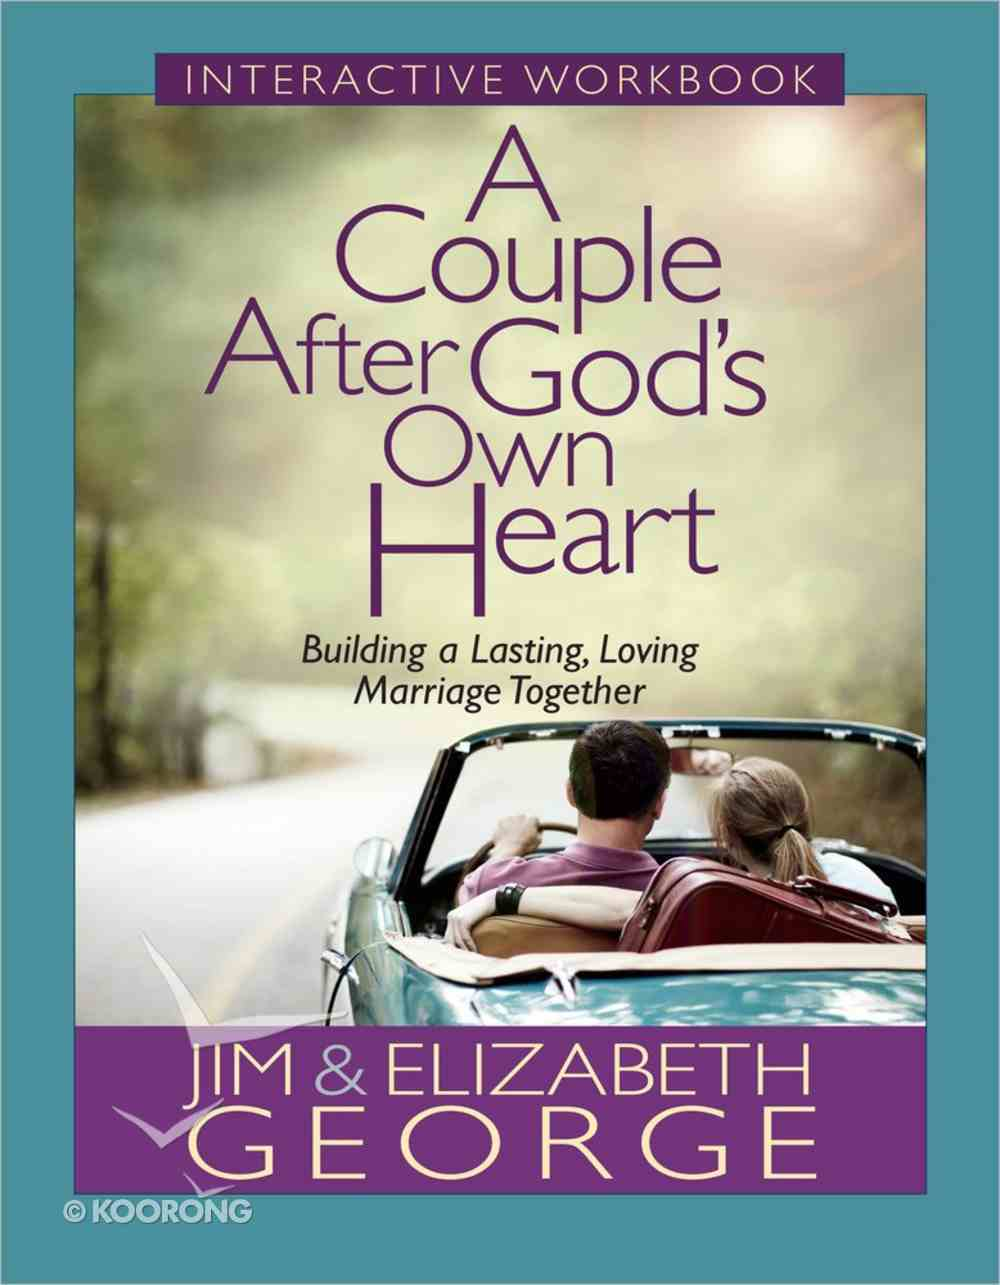 A Couple After God's Own Heart (Interactive Workbook) Paperback